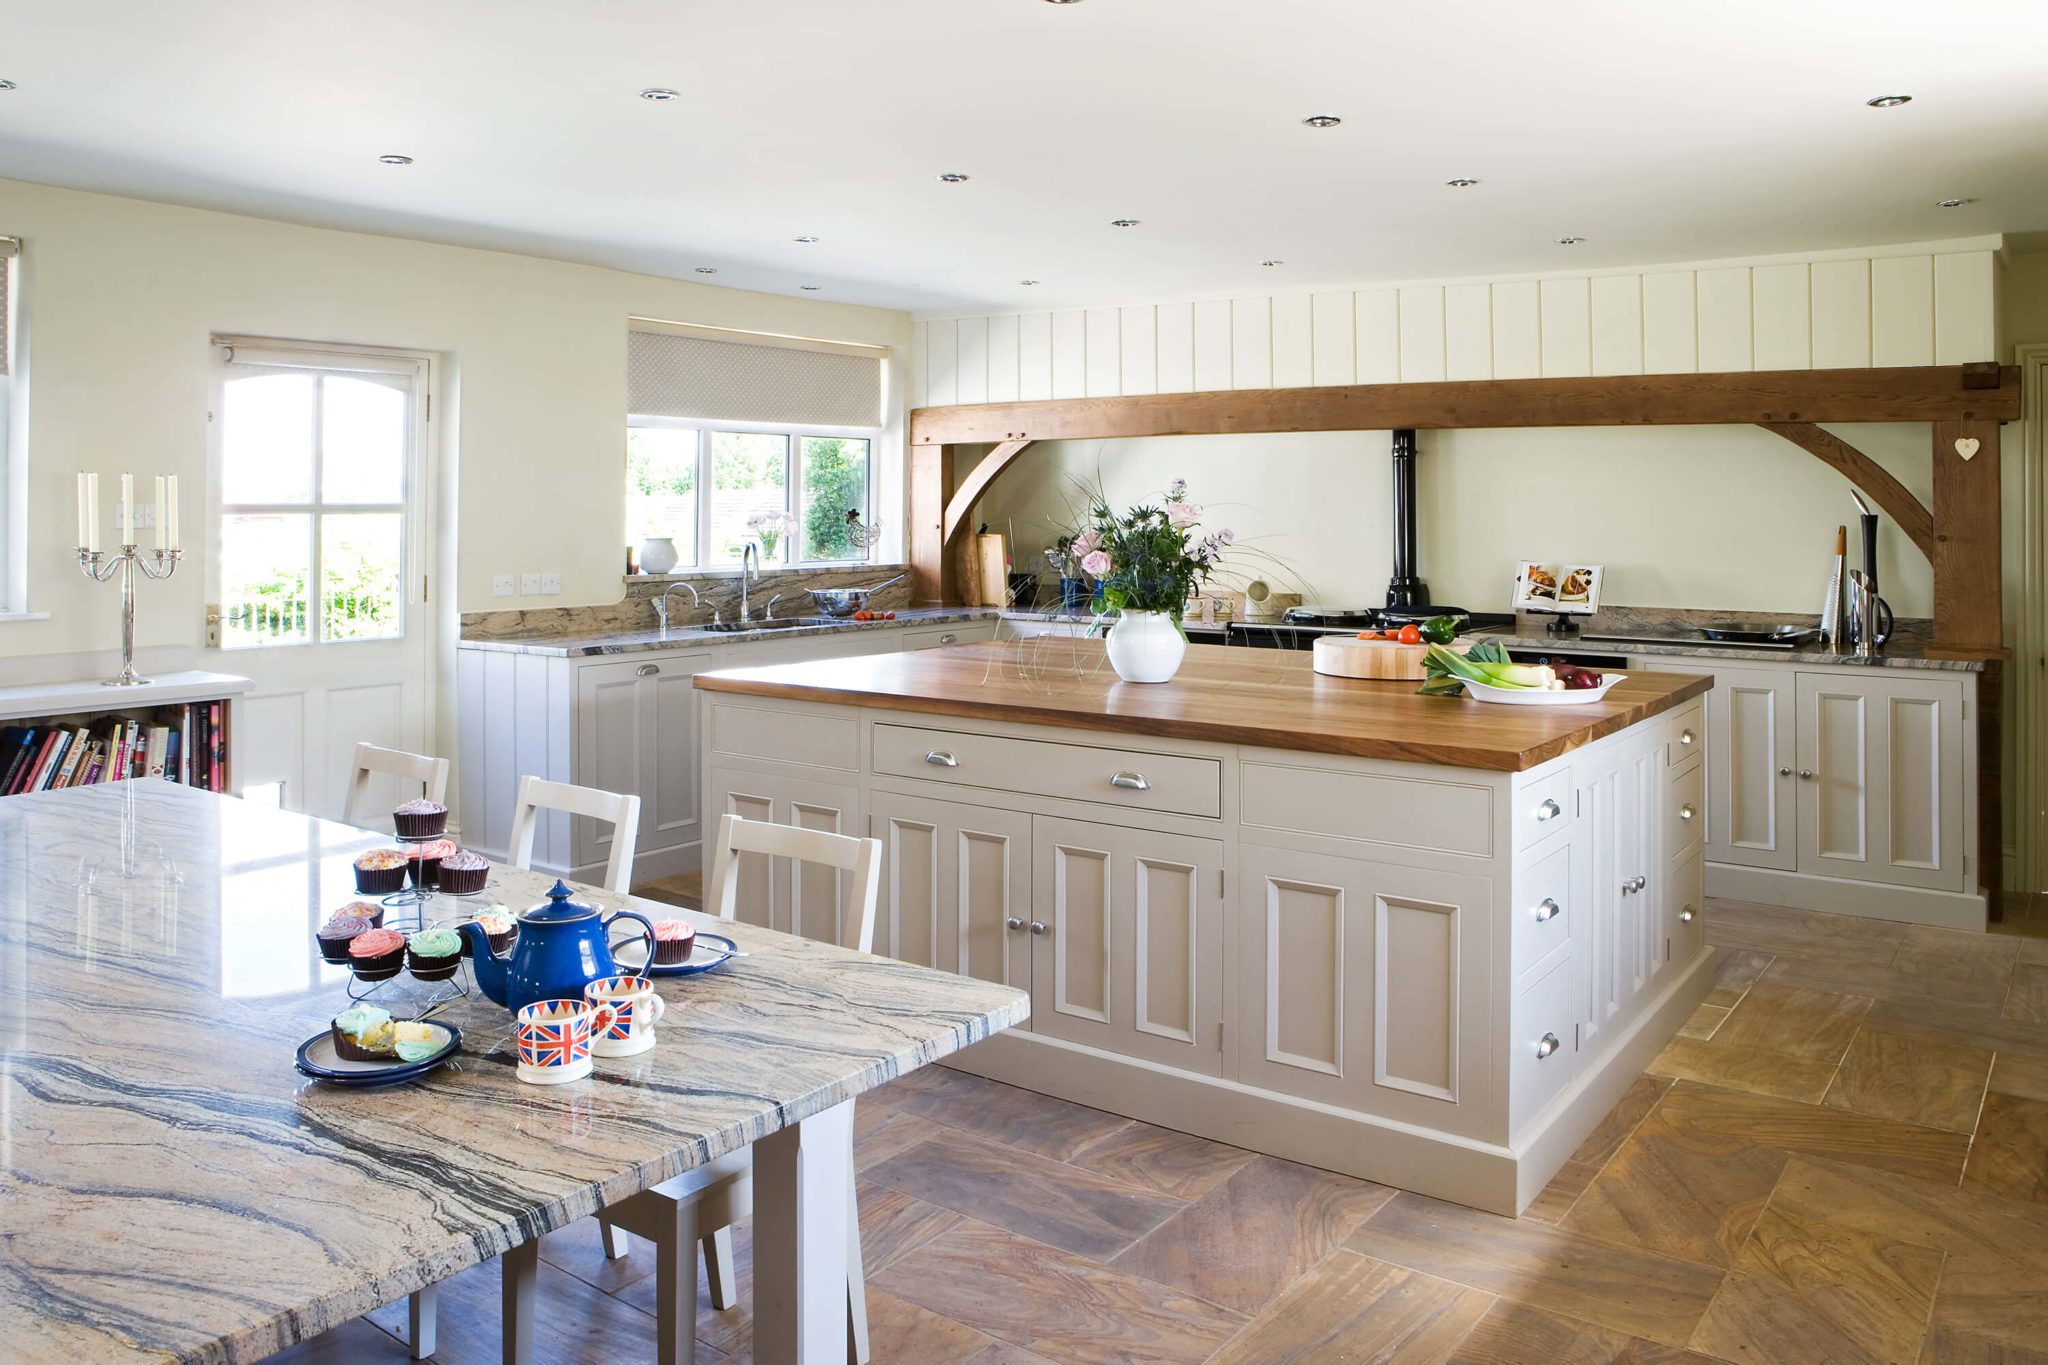 Hill Farm Furniture and Kitchens - Hill Farm Furniture